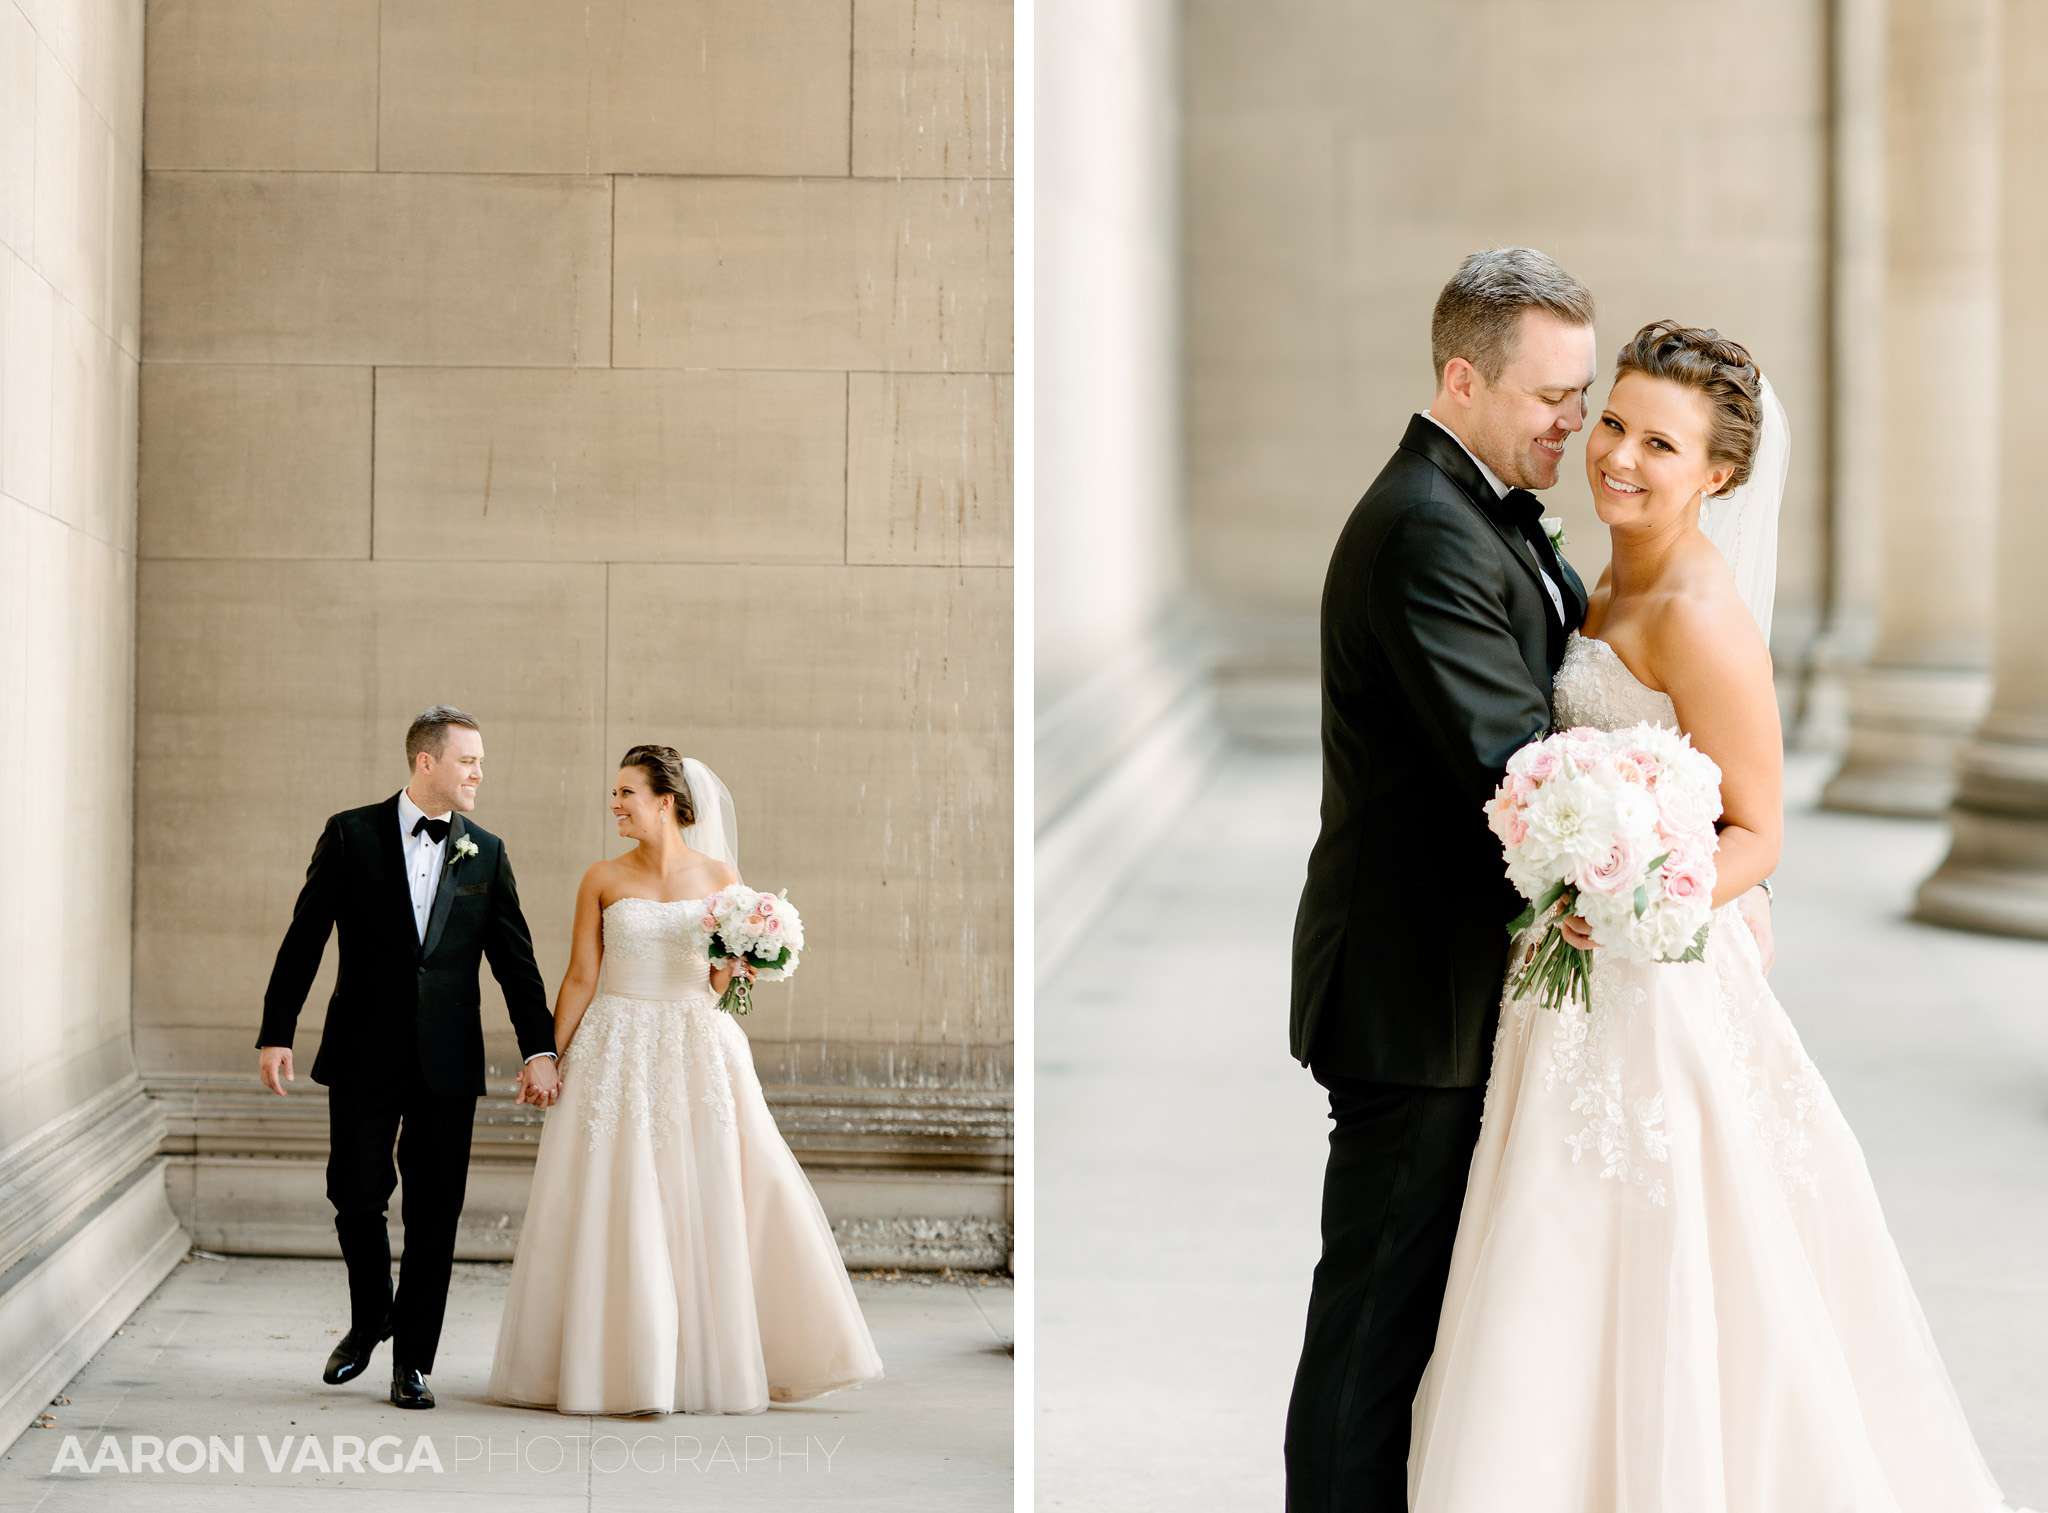 20 mellon institute wedding photos - Dina + Brendan | Southpointe Golf Club Wedding Photos